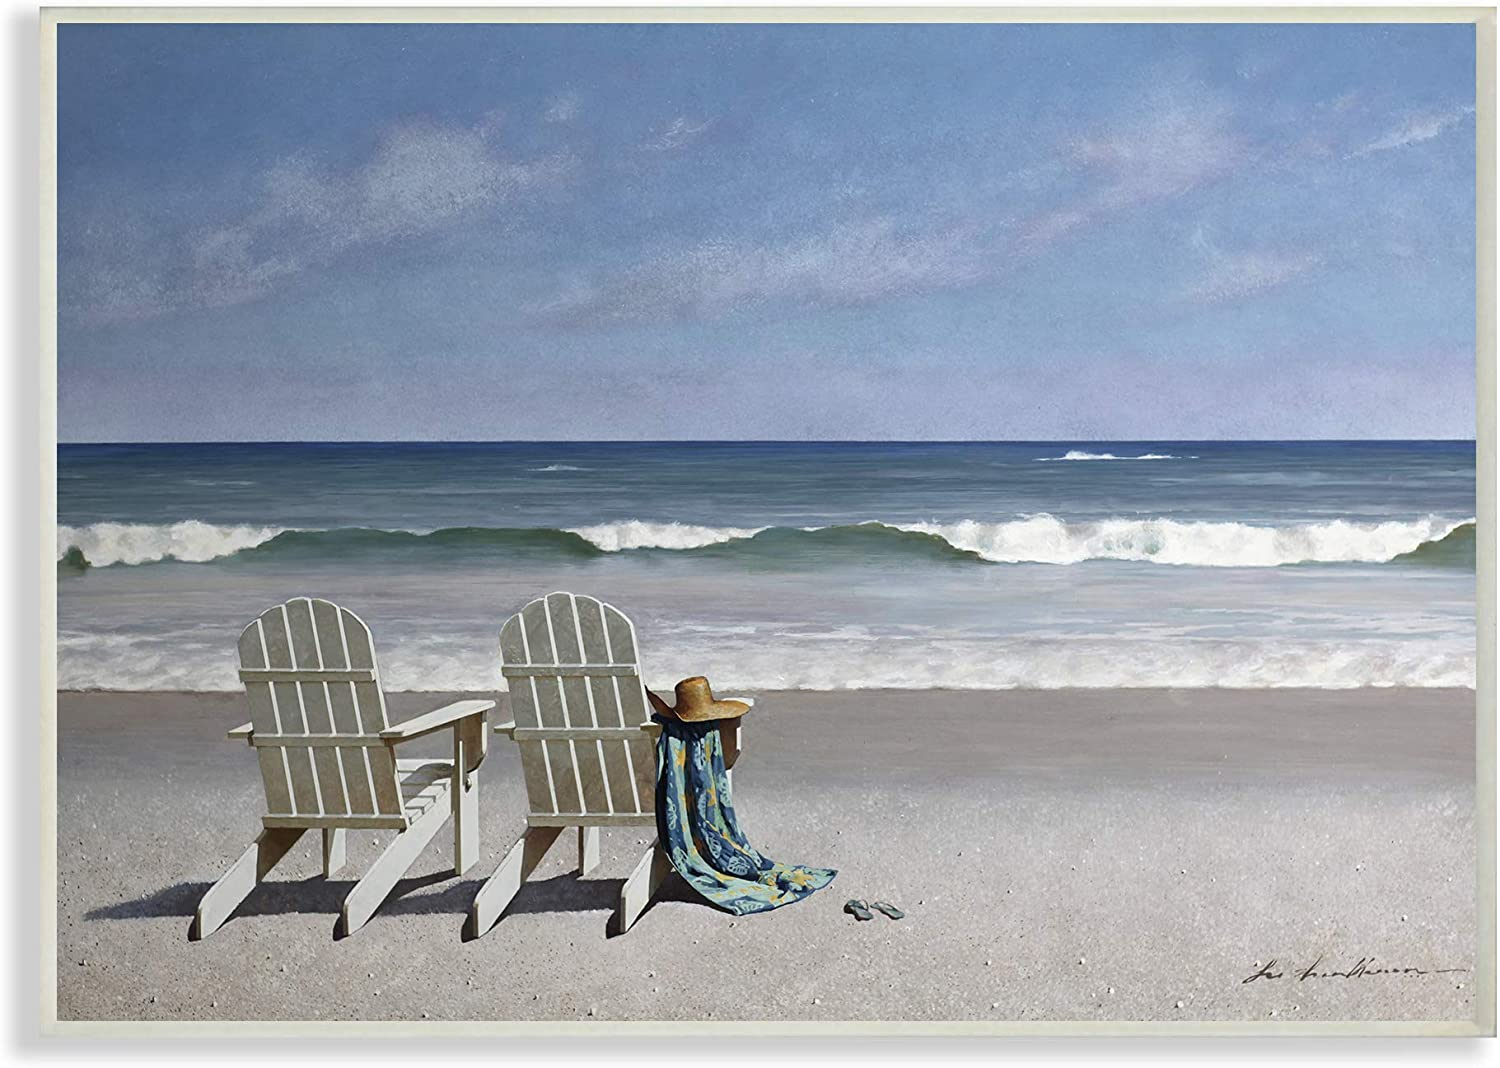 The Stupell Home Decor Two White Adirondack Chairs on The Beach Wall Plaque Art, 10 x 15, Multi-Color